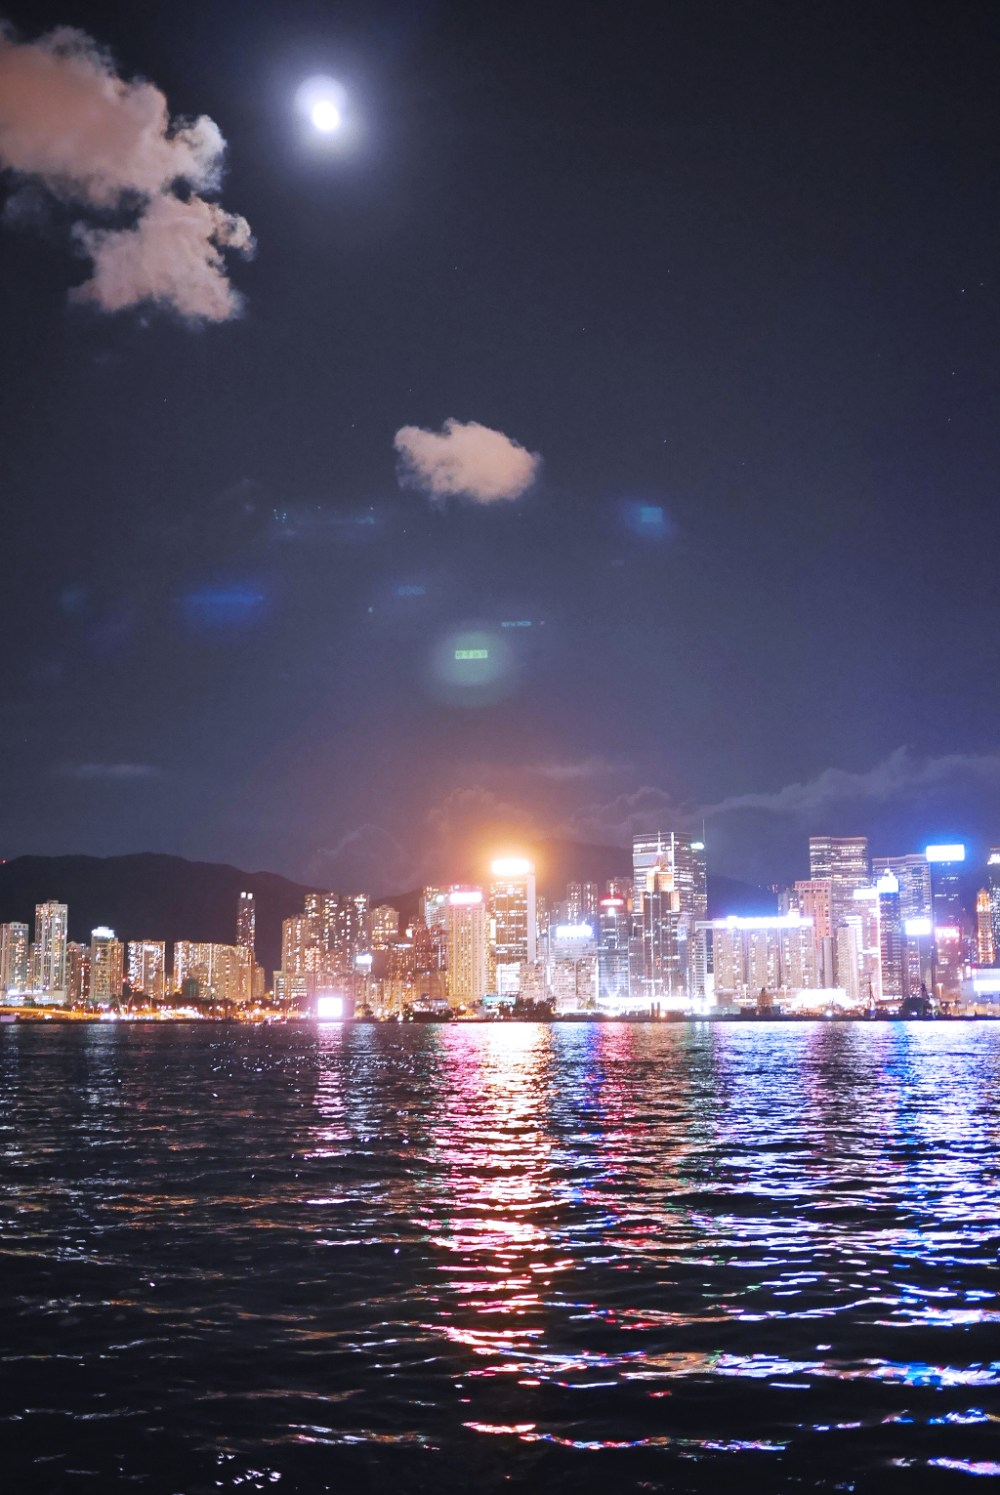 Avenue of Stars, Tsim Sha Tsui, Hong Kong.